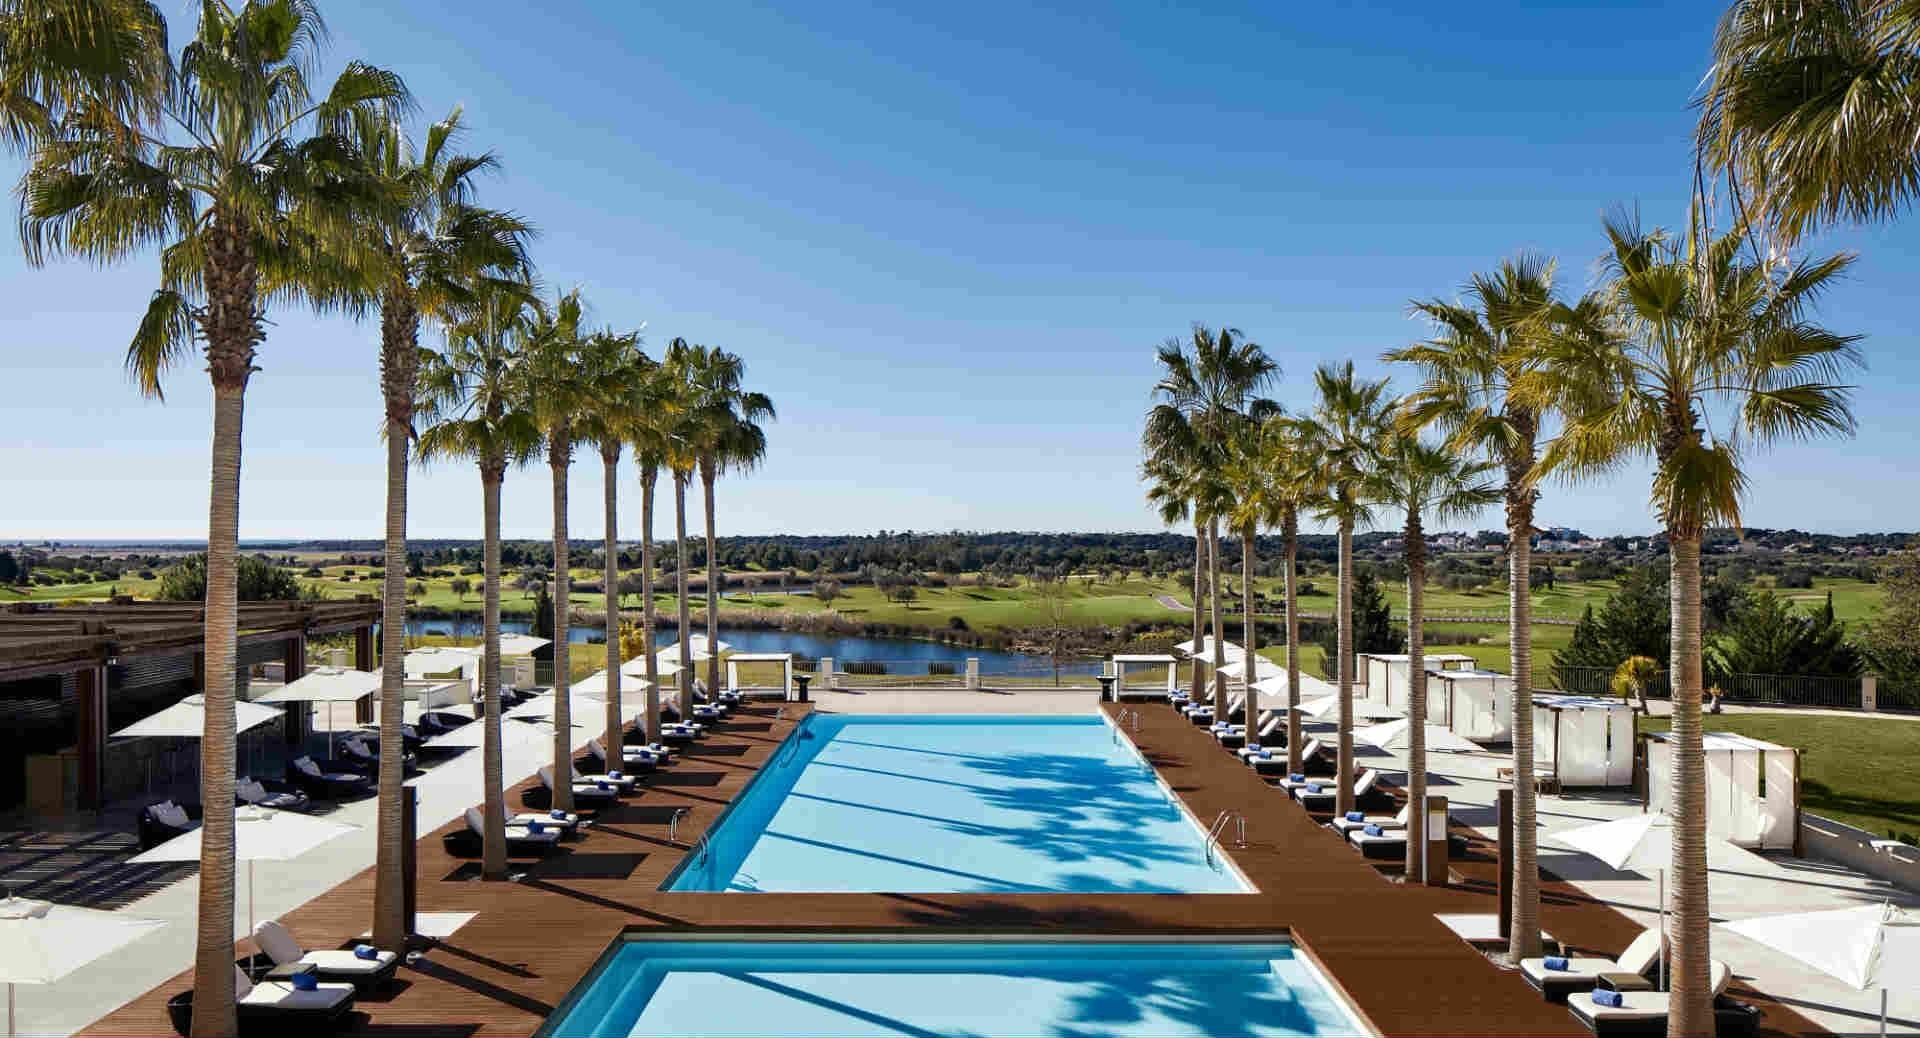 Anantara Vilamoura Main Pool View